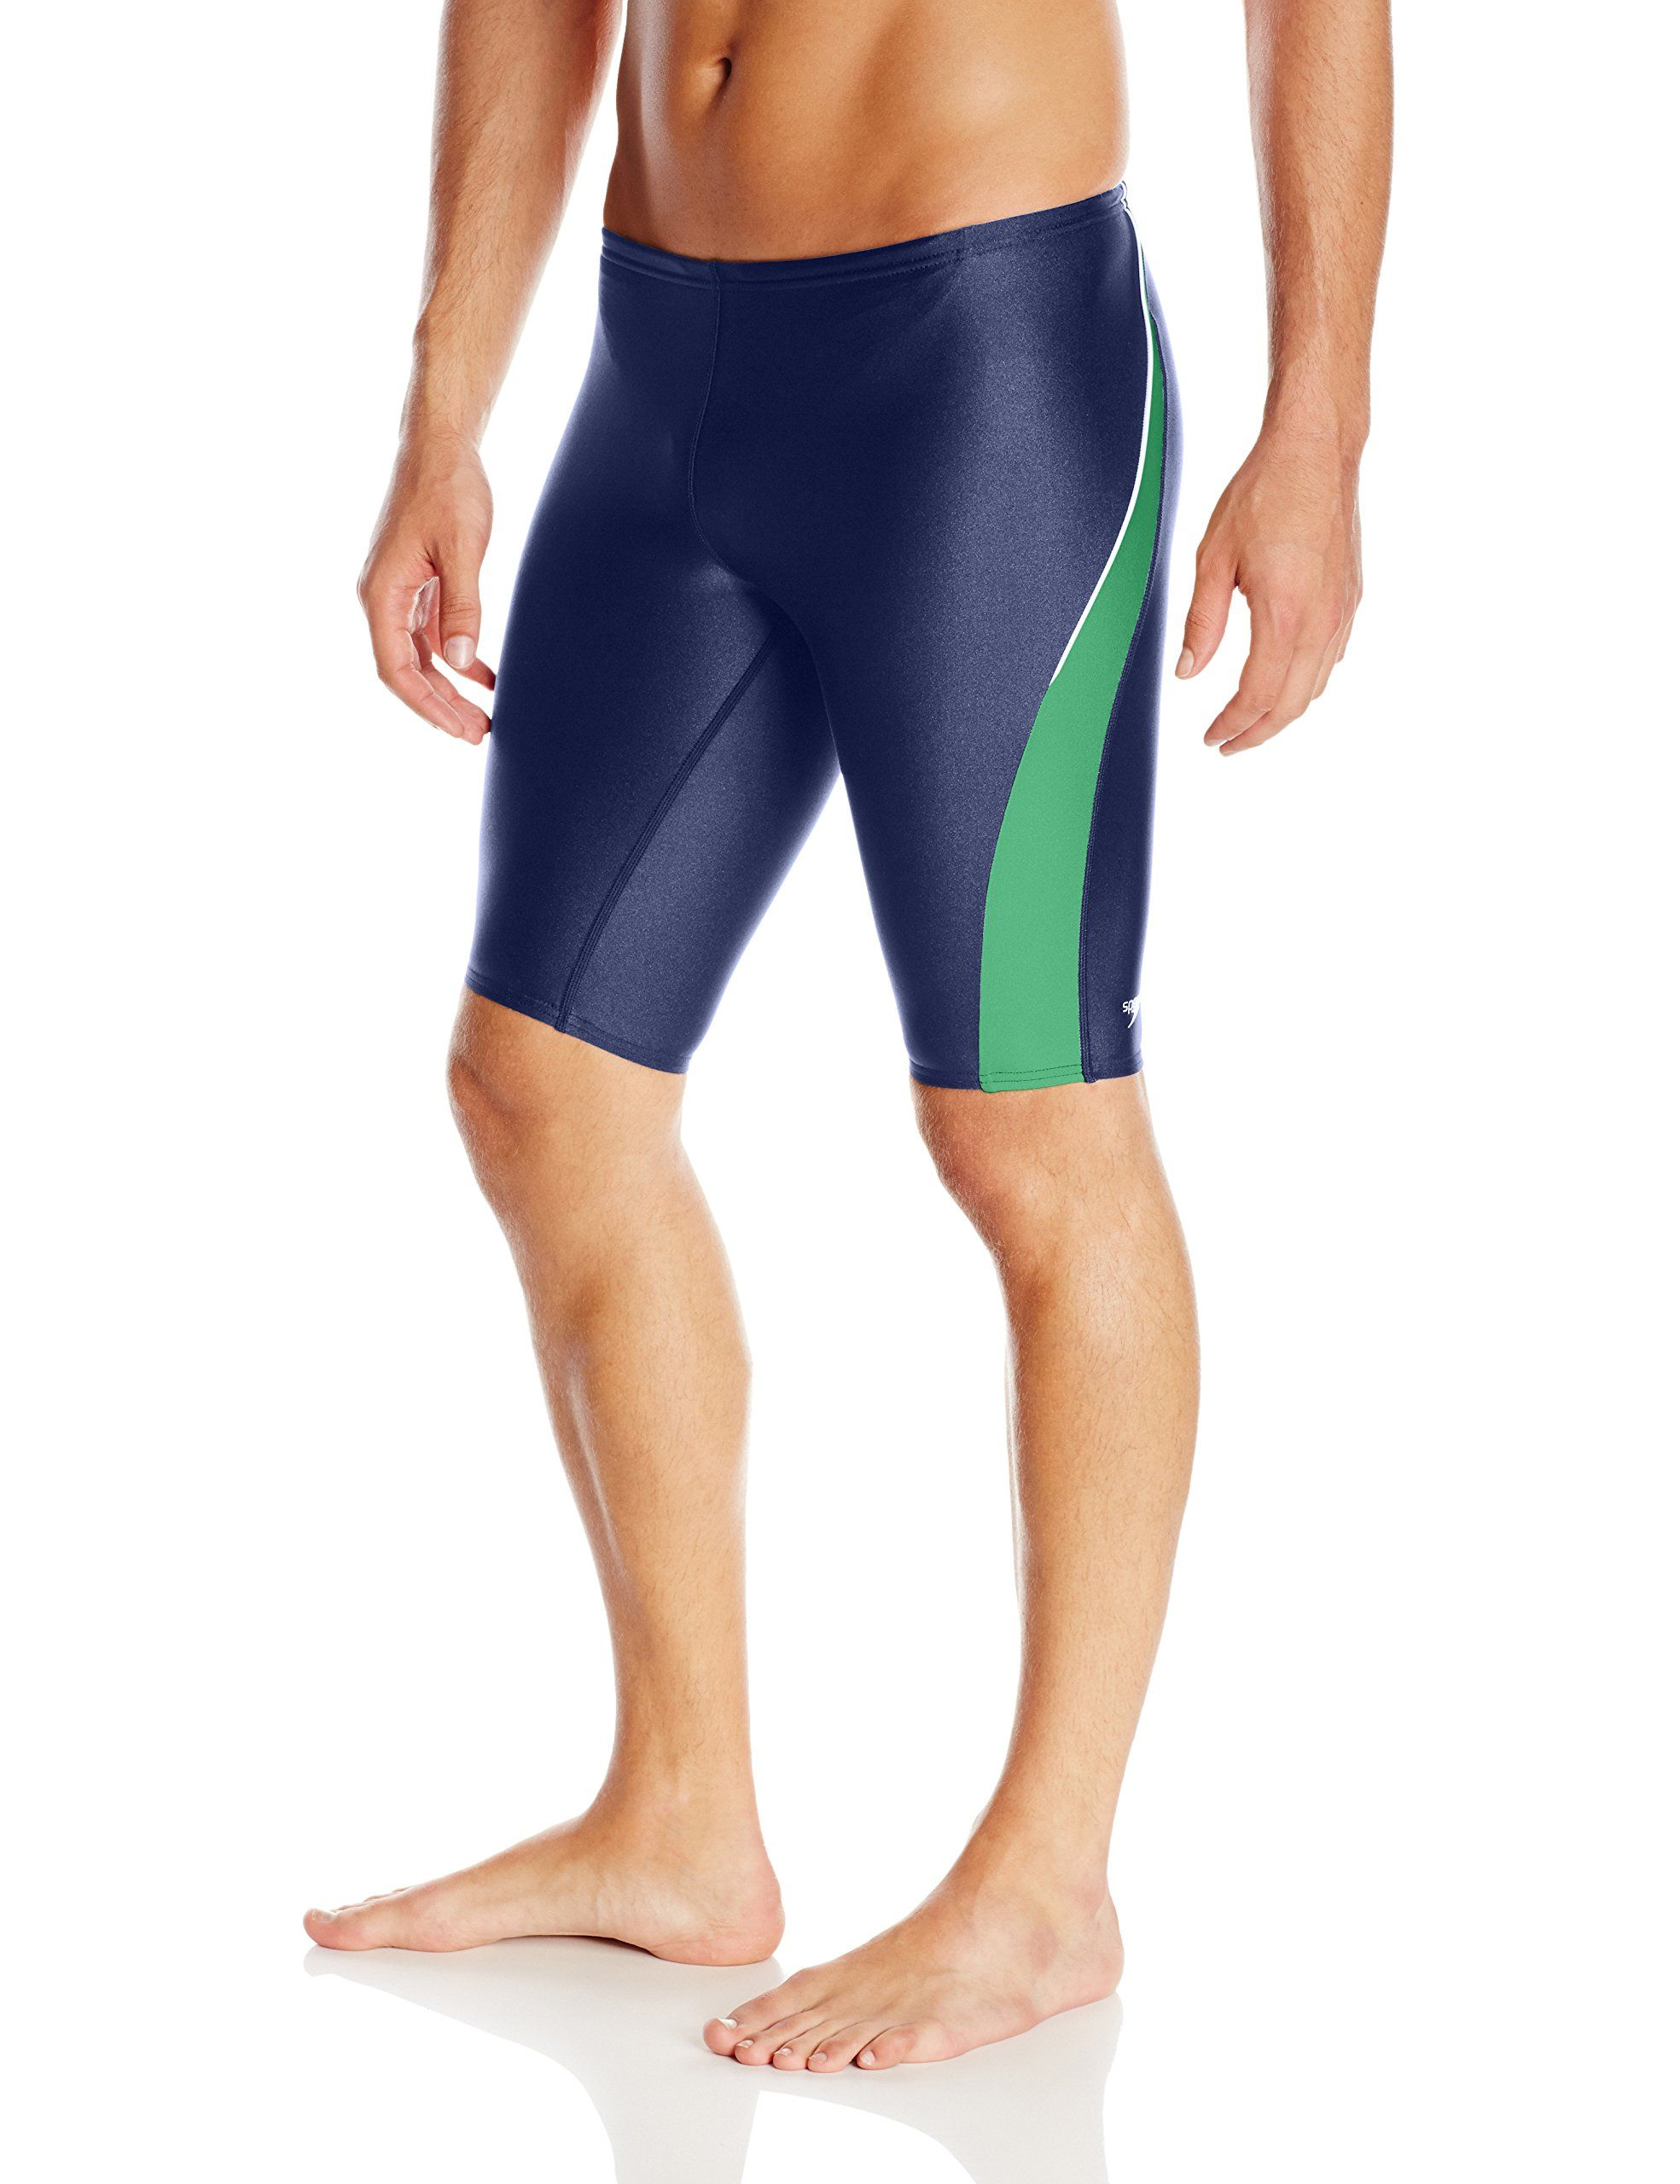 af84270147 Speedo Men's Xtra Life Lycra Taper Splice Jammer Swimsuit, Green/Blue, 30.